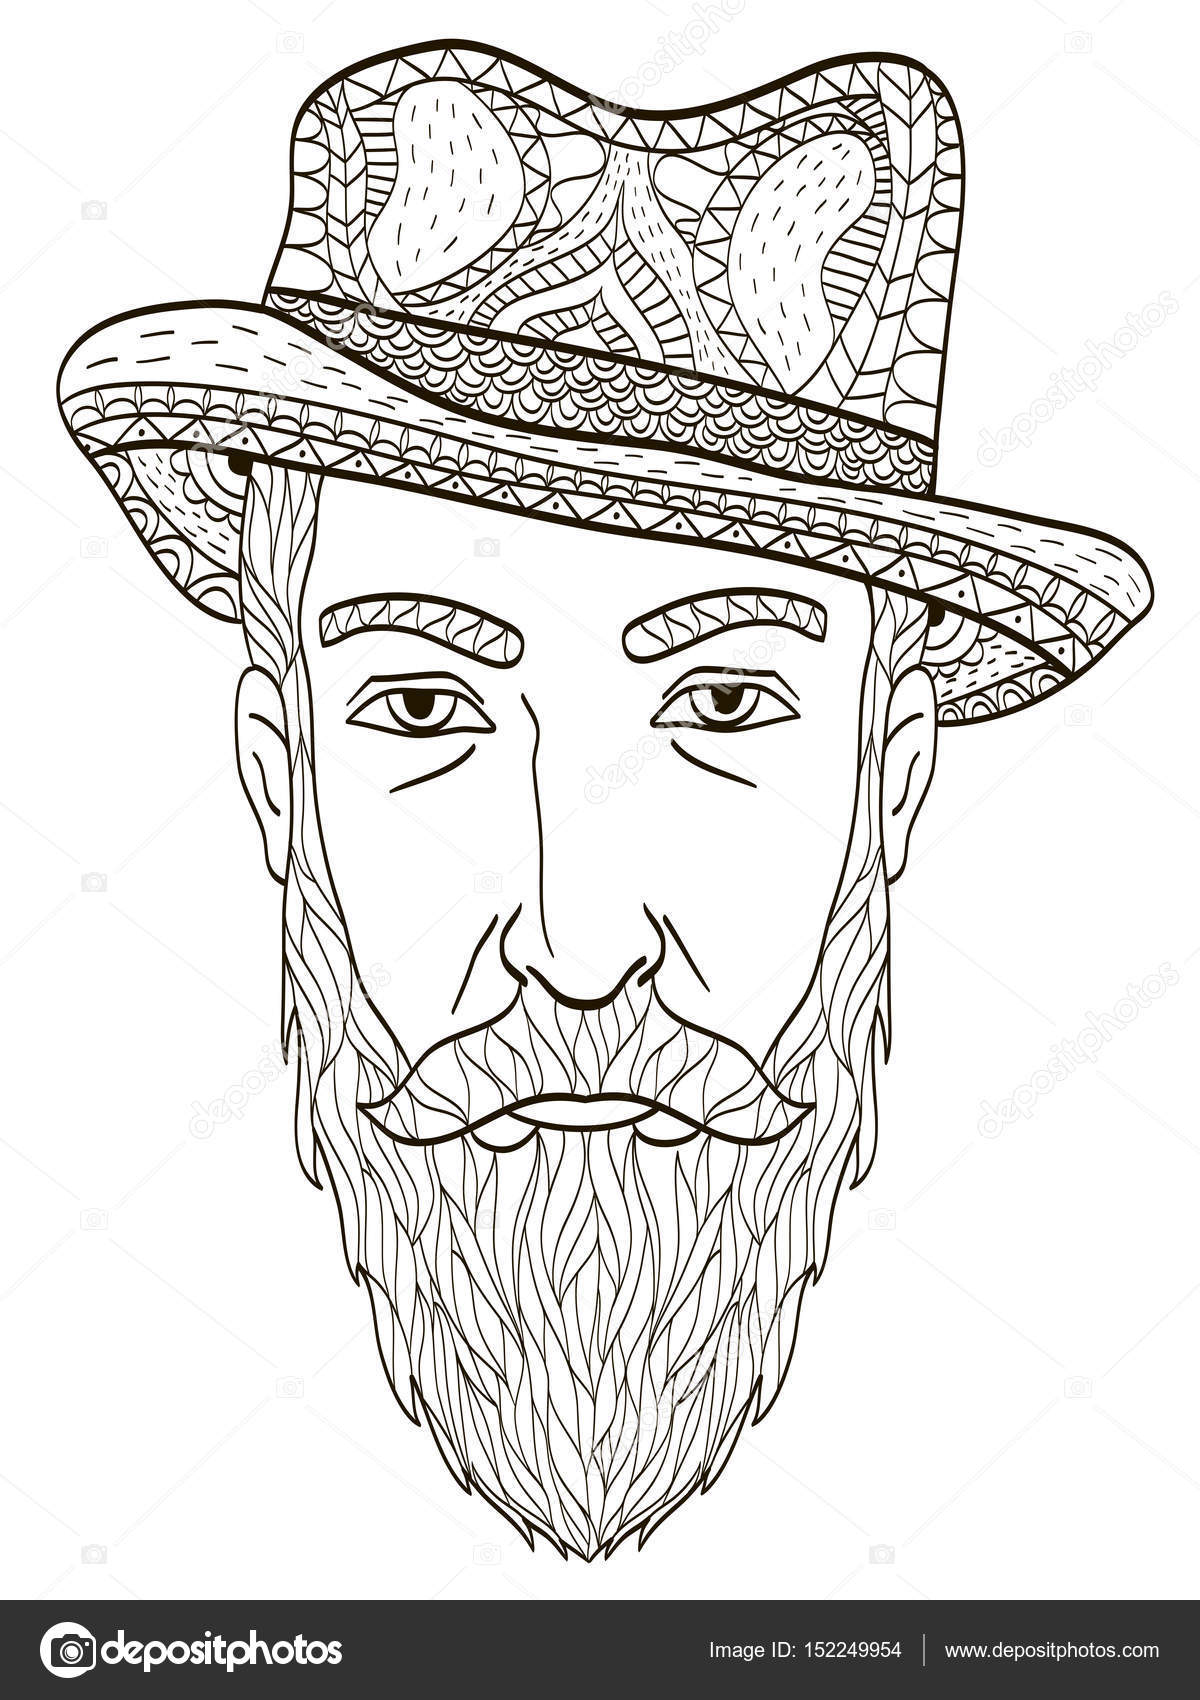 Head Of An Elderly Man With A Beard Coloring Book Vector For